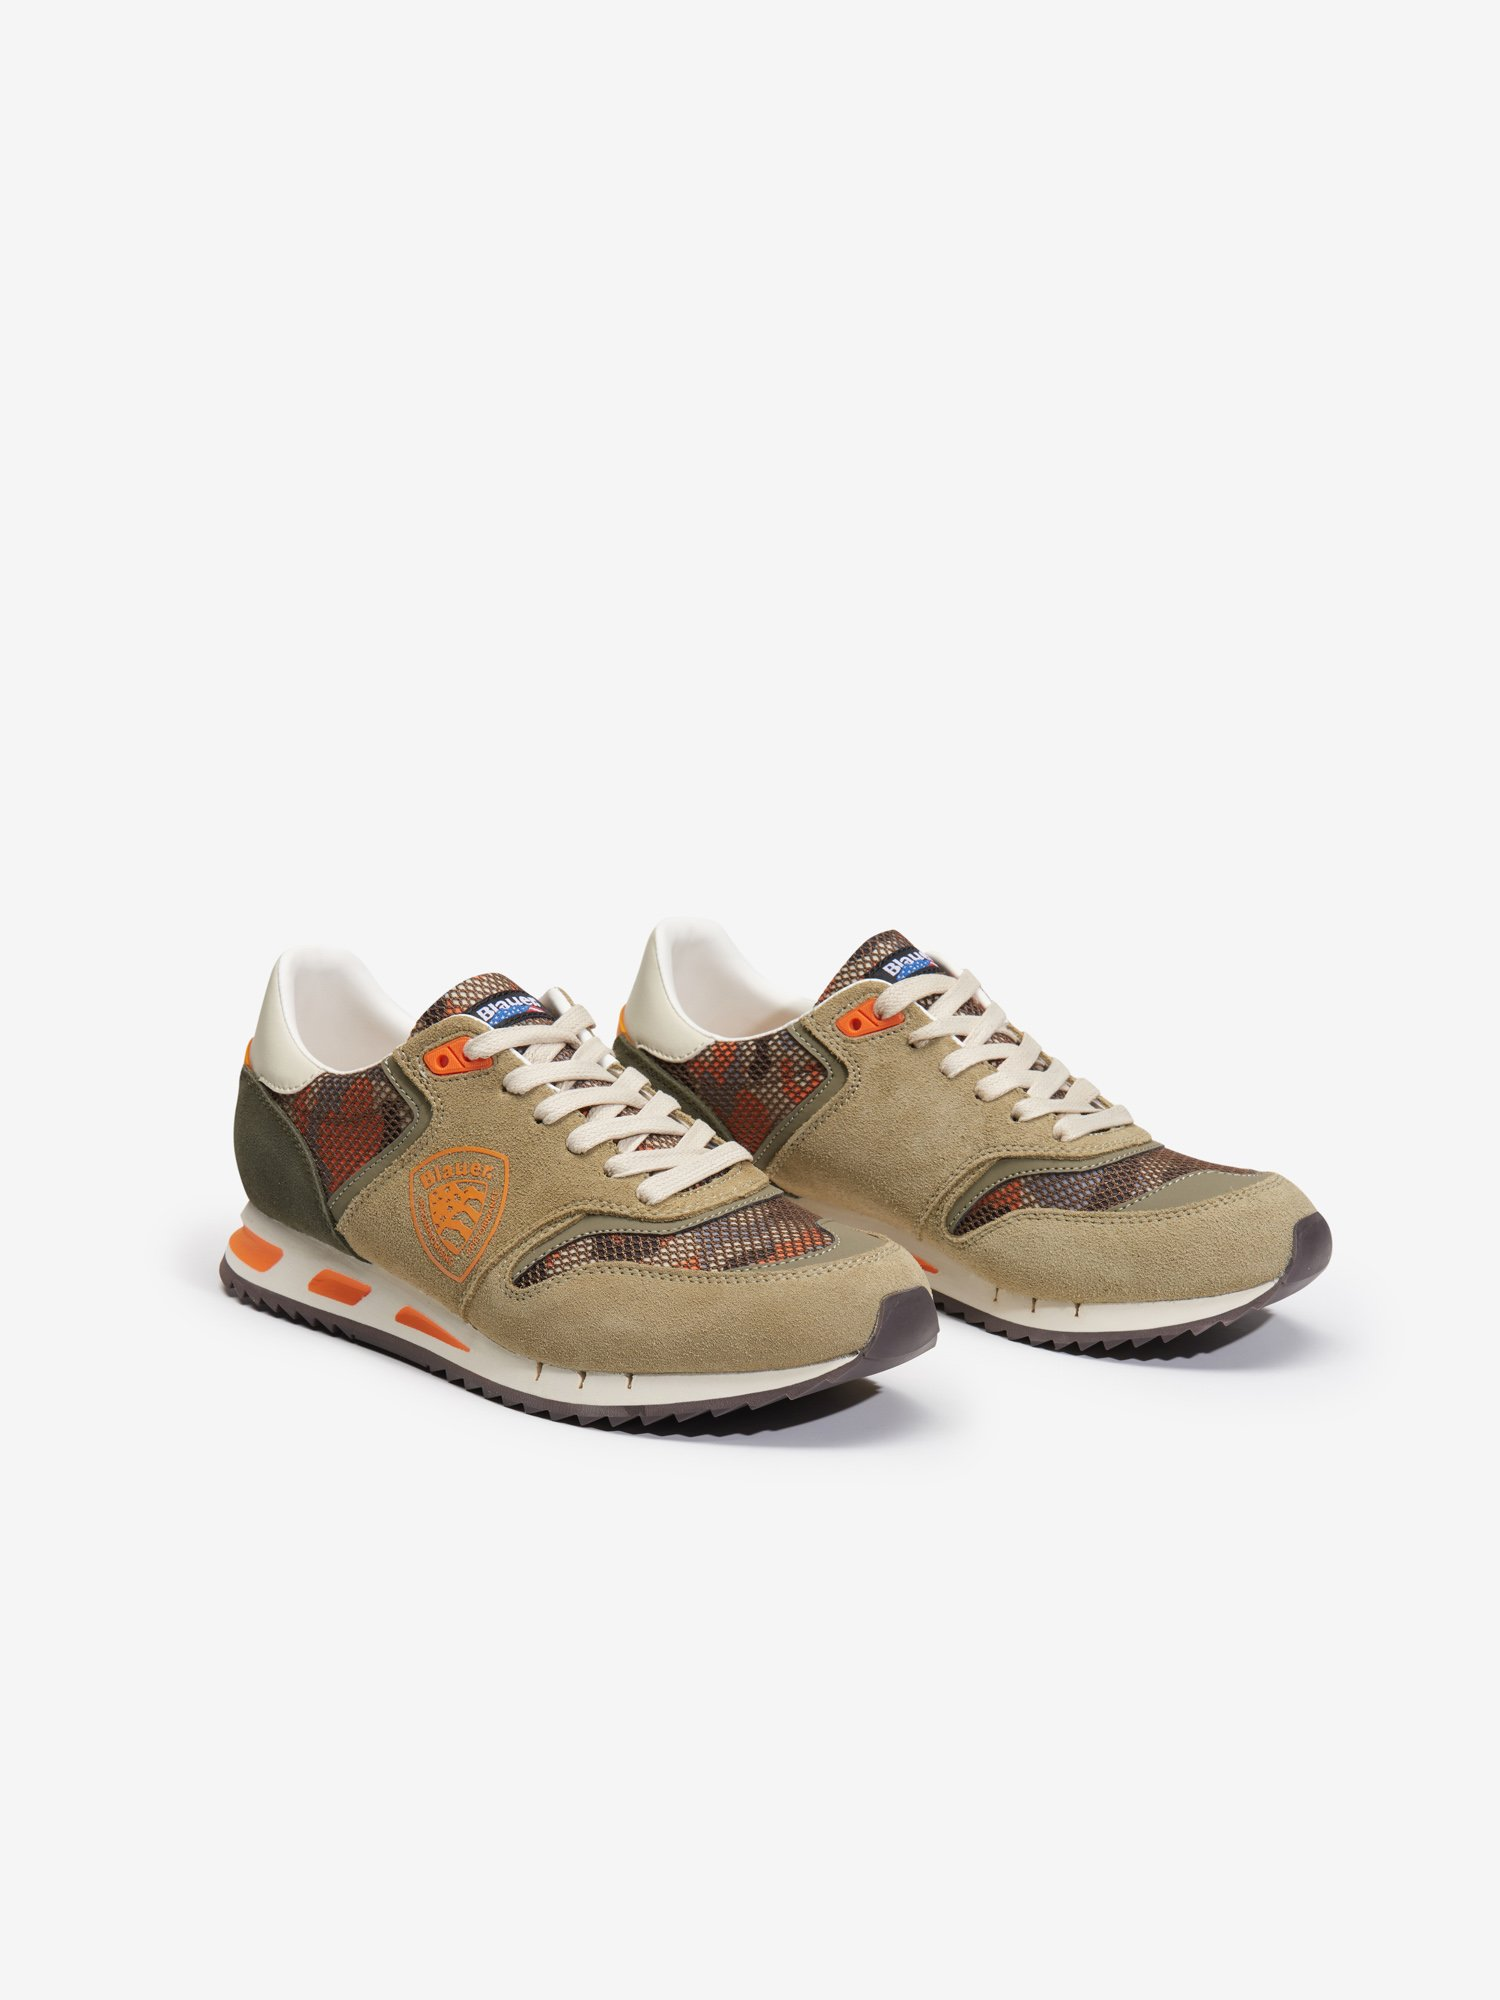 ff54acf5112 Best Collection of Shoes for Men - Shop Online | Blauer USA ®